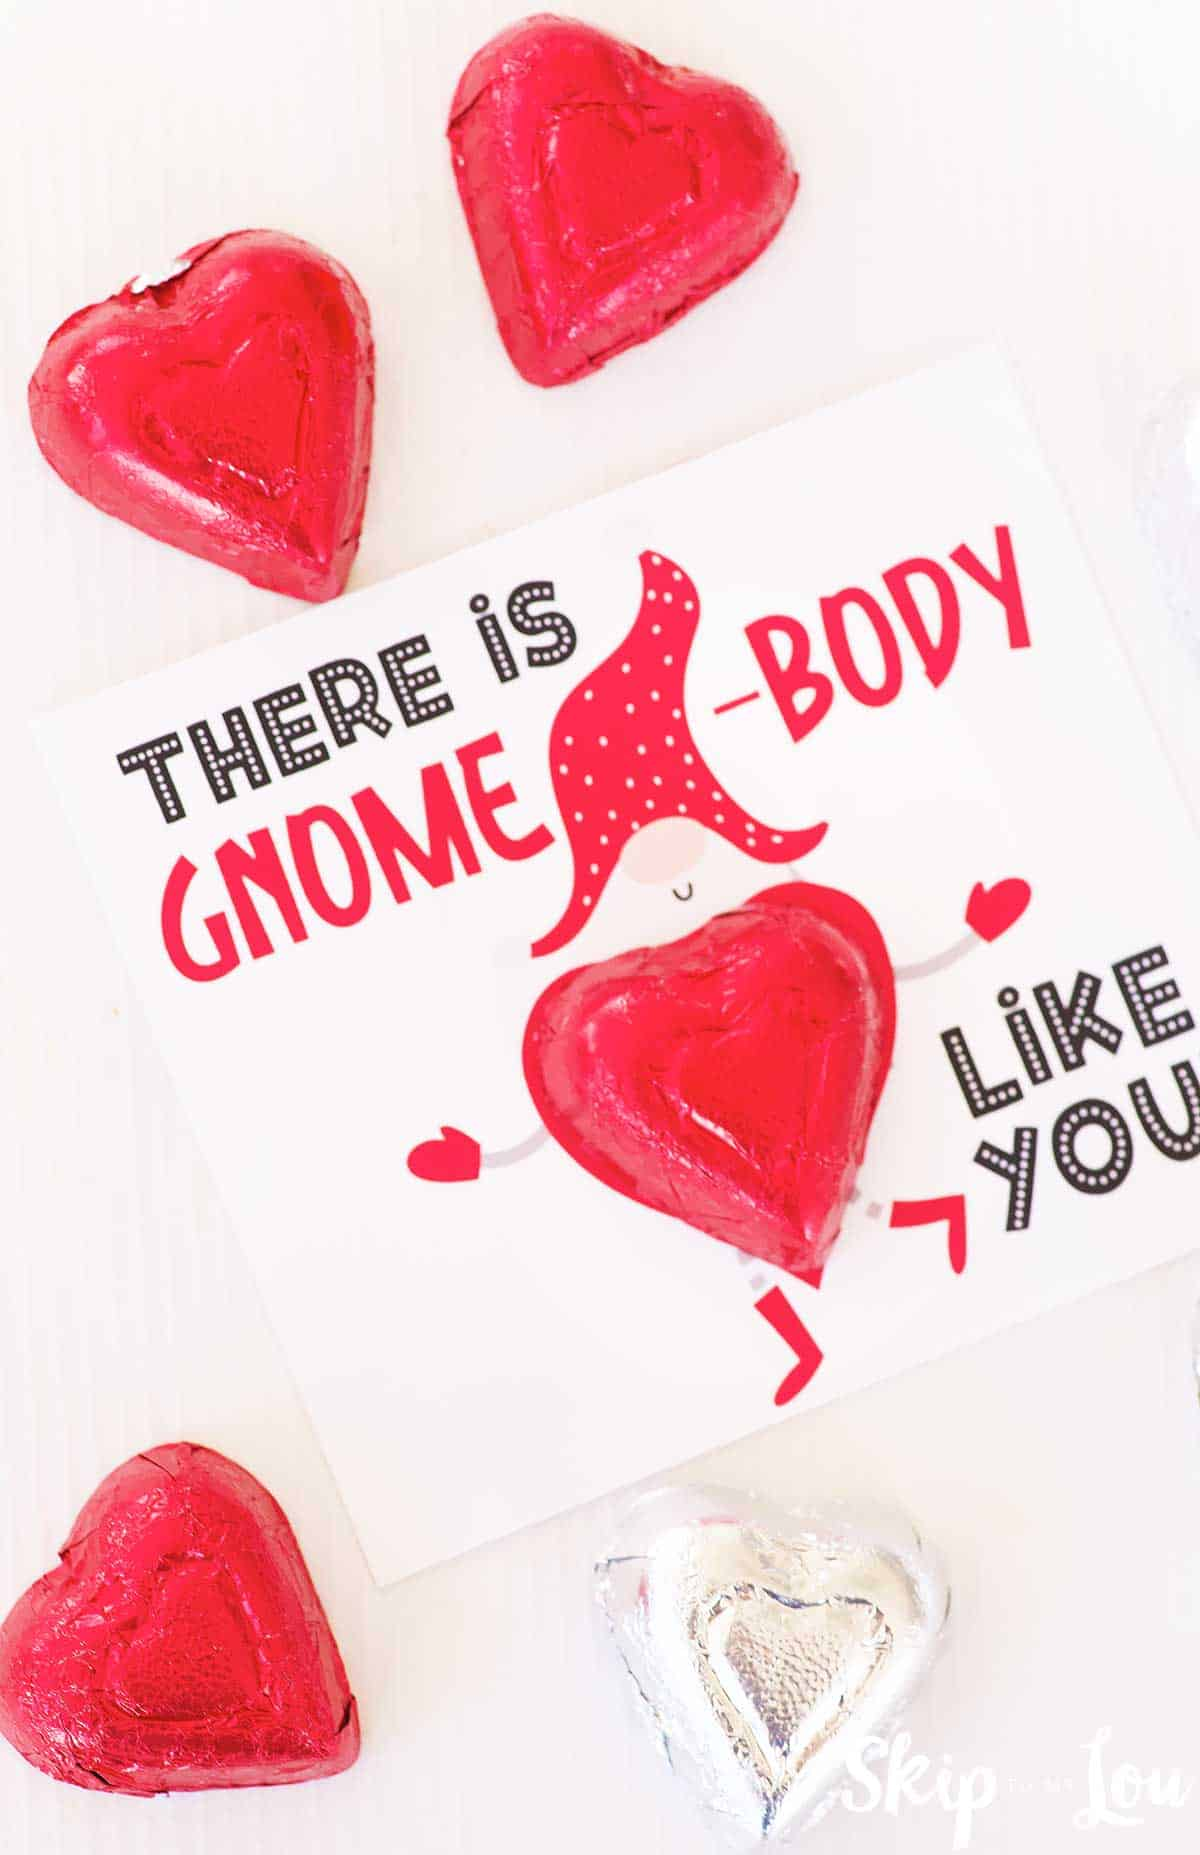 there is gnome body like you valentine with red candy heart